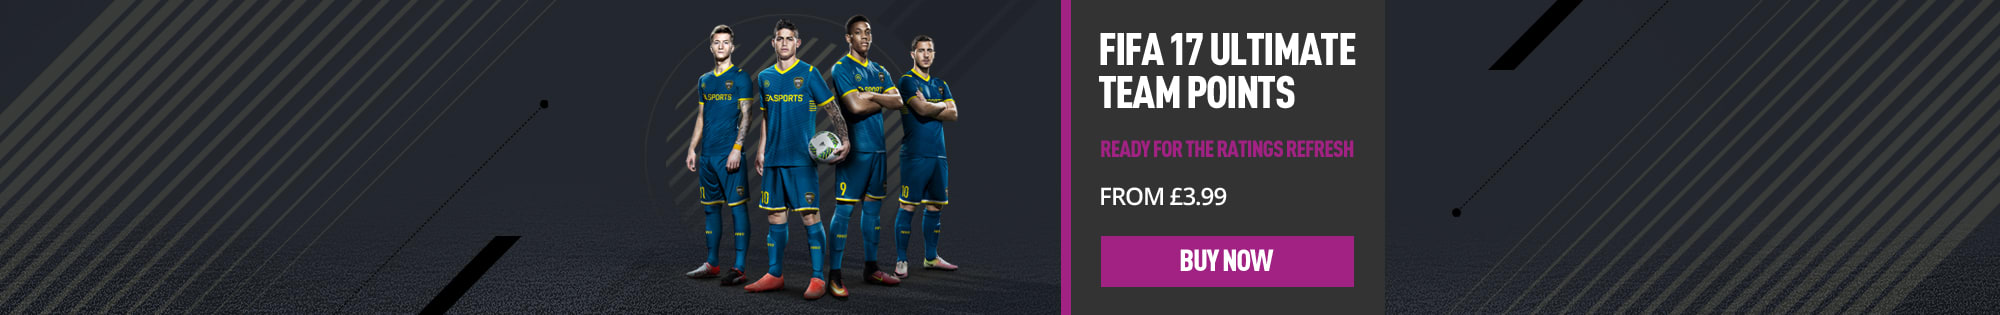 FIFA 17 Ultimate Team Points for Xbox Live and Playstation Network